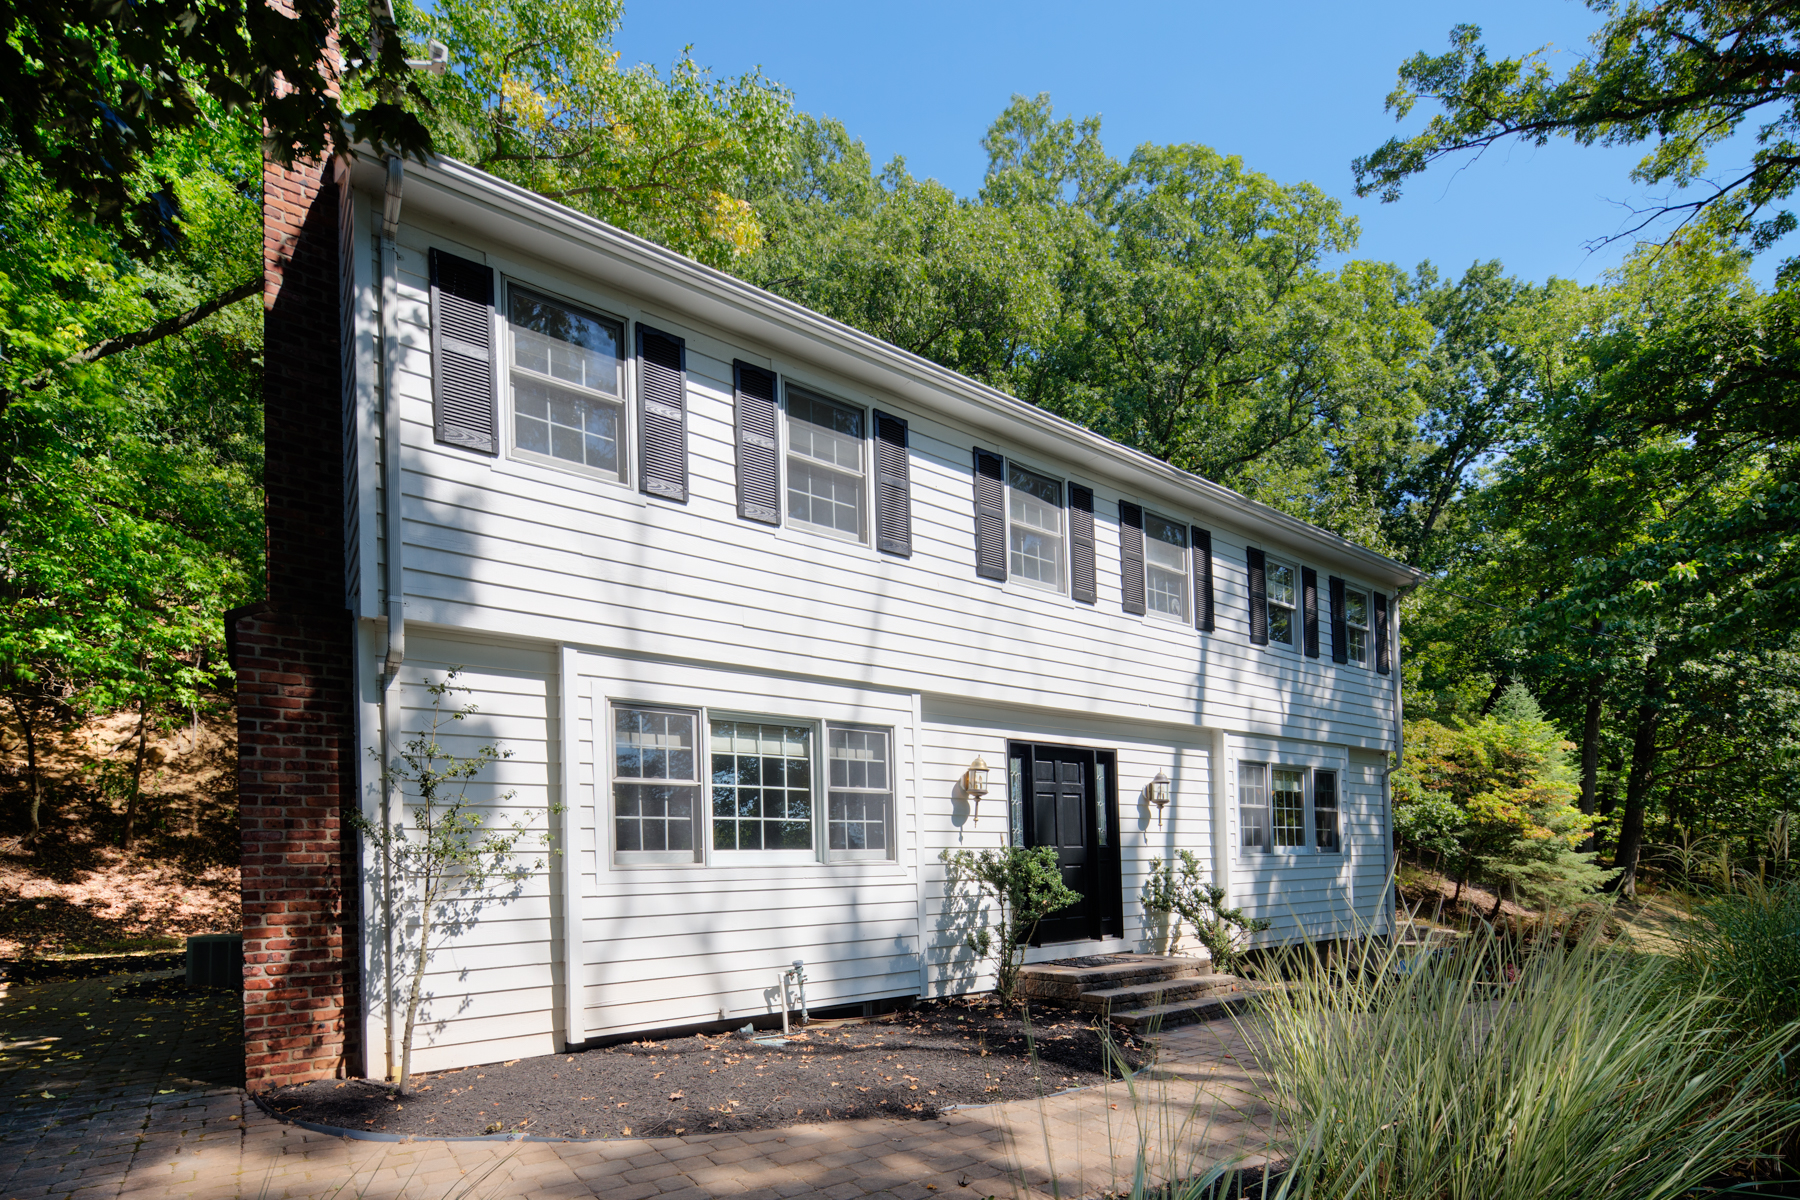 Single Family Home for Sale at Well Maintained Colonial 6 Claire Drive Bridgewater, New Jersey, 08807 United States